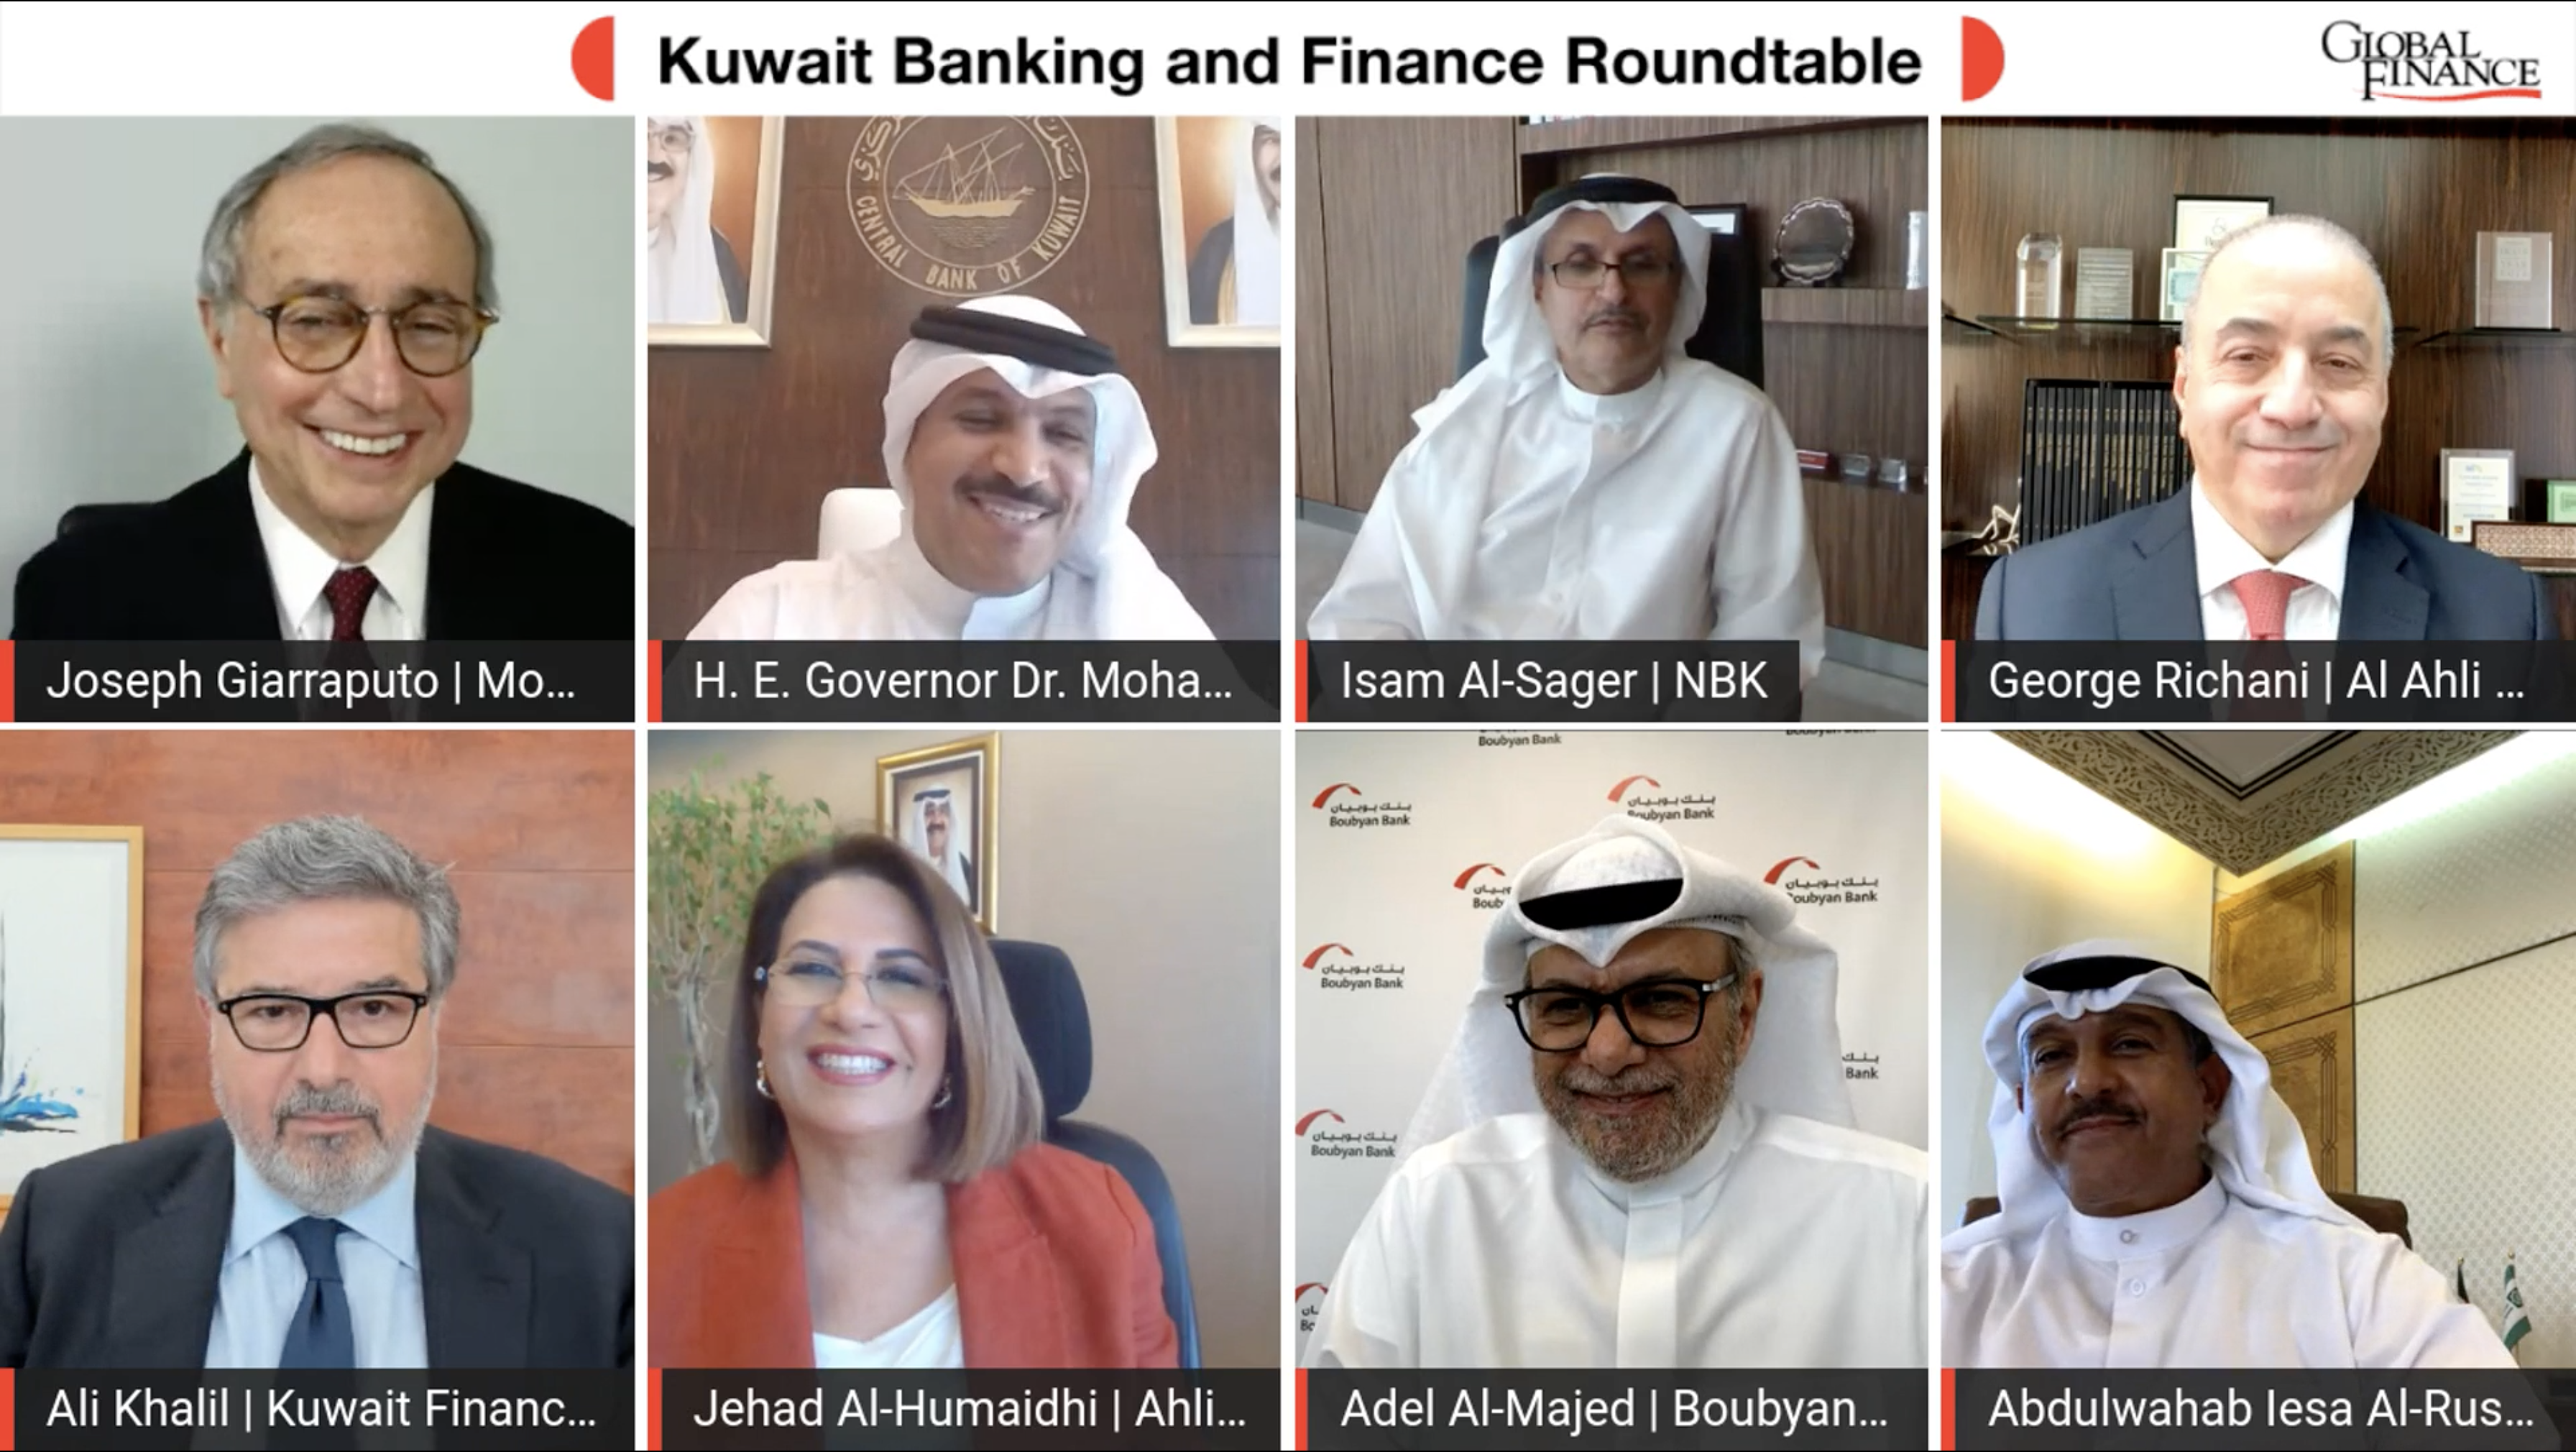 Kuwait Roundtable: Looking to Recovery